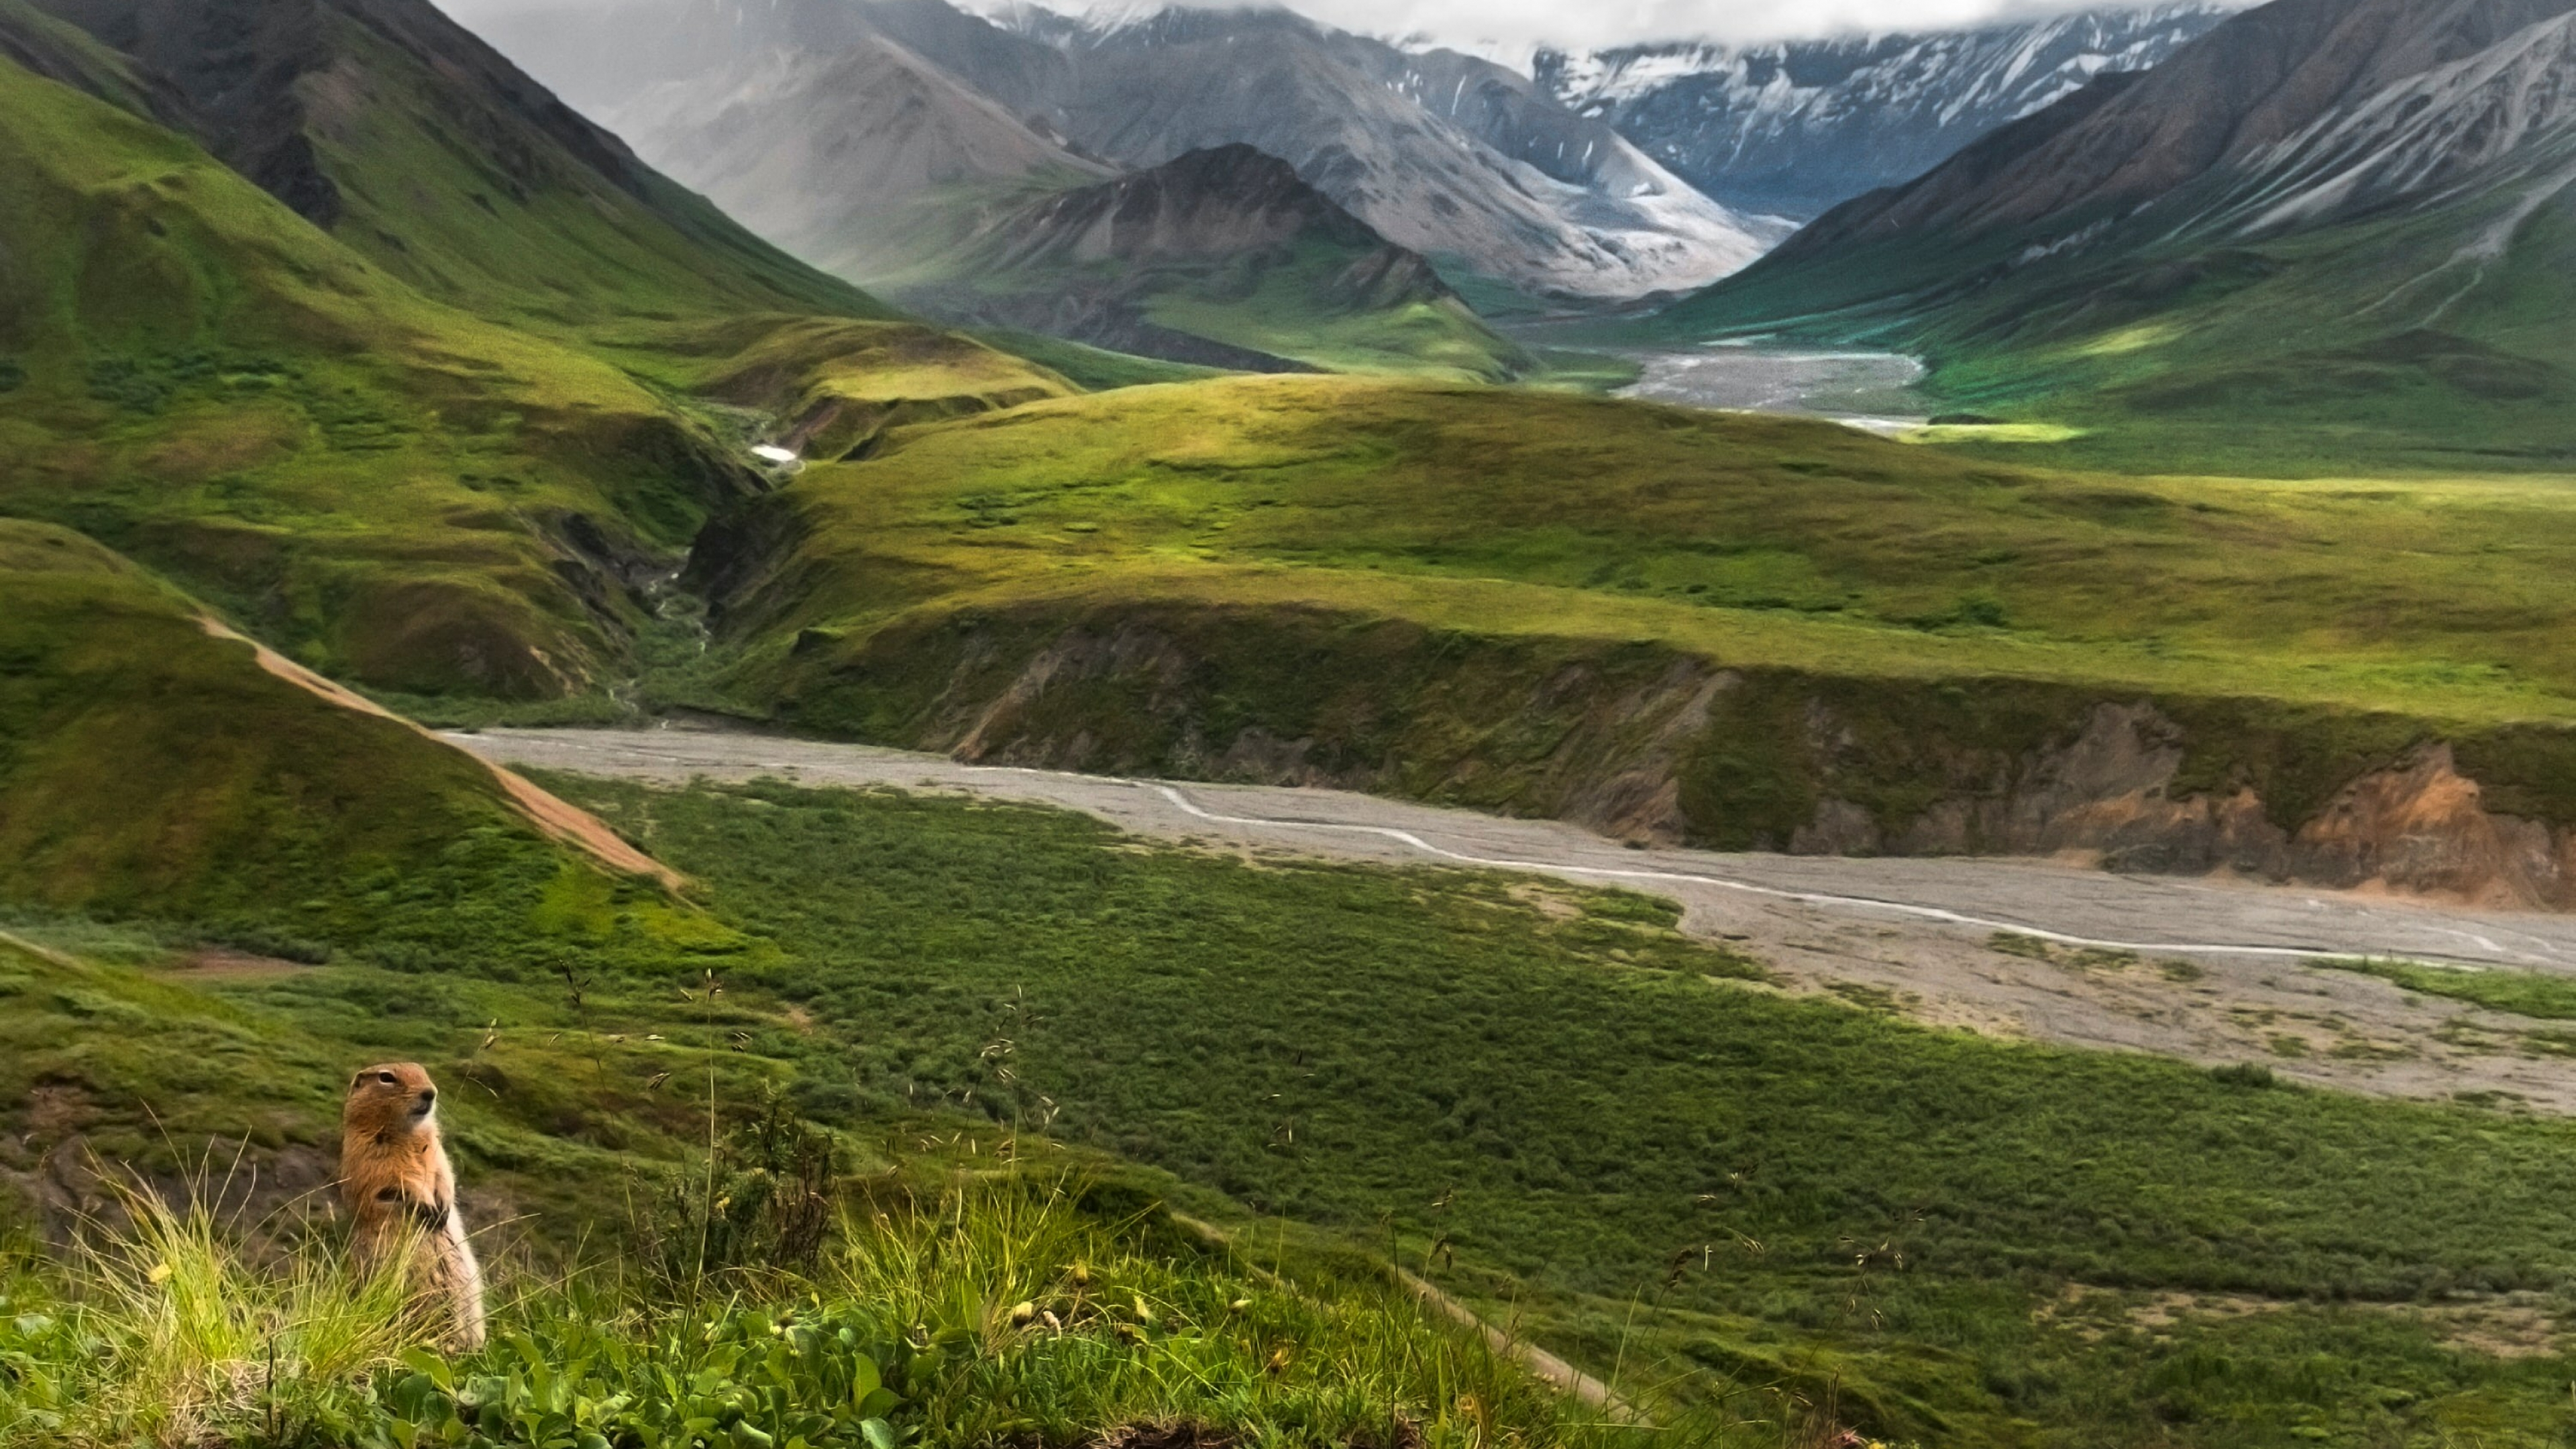 An arctic ground squirrel on its hind legs in the grass with the expansive green valley and rocky and snowy mountains at Denali National Park and Preserve